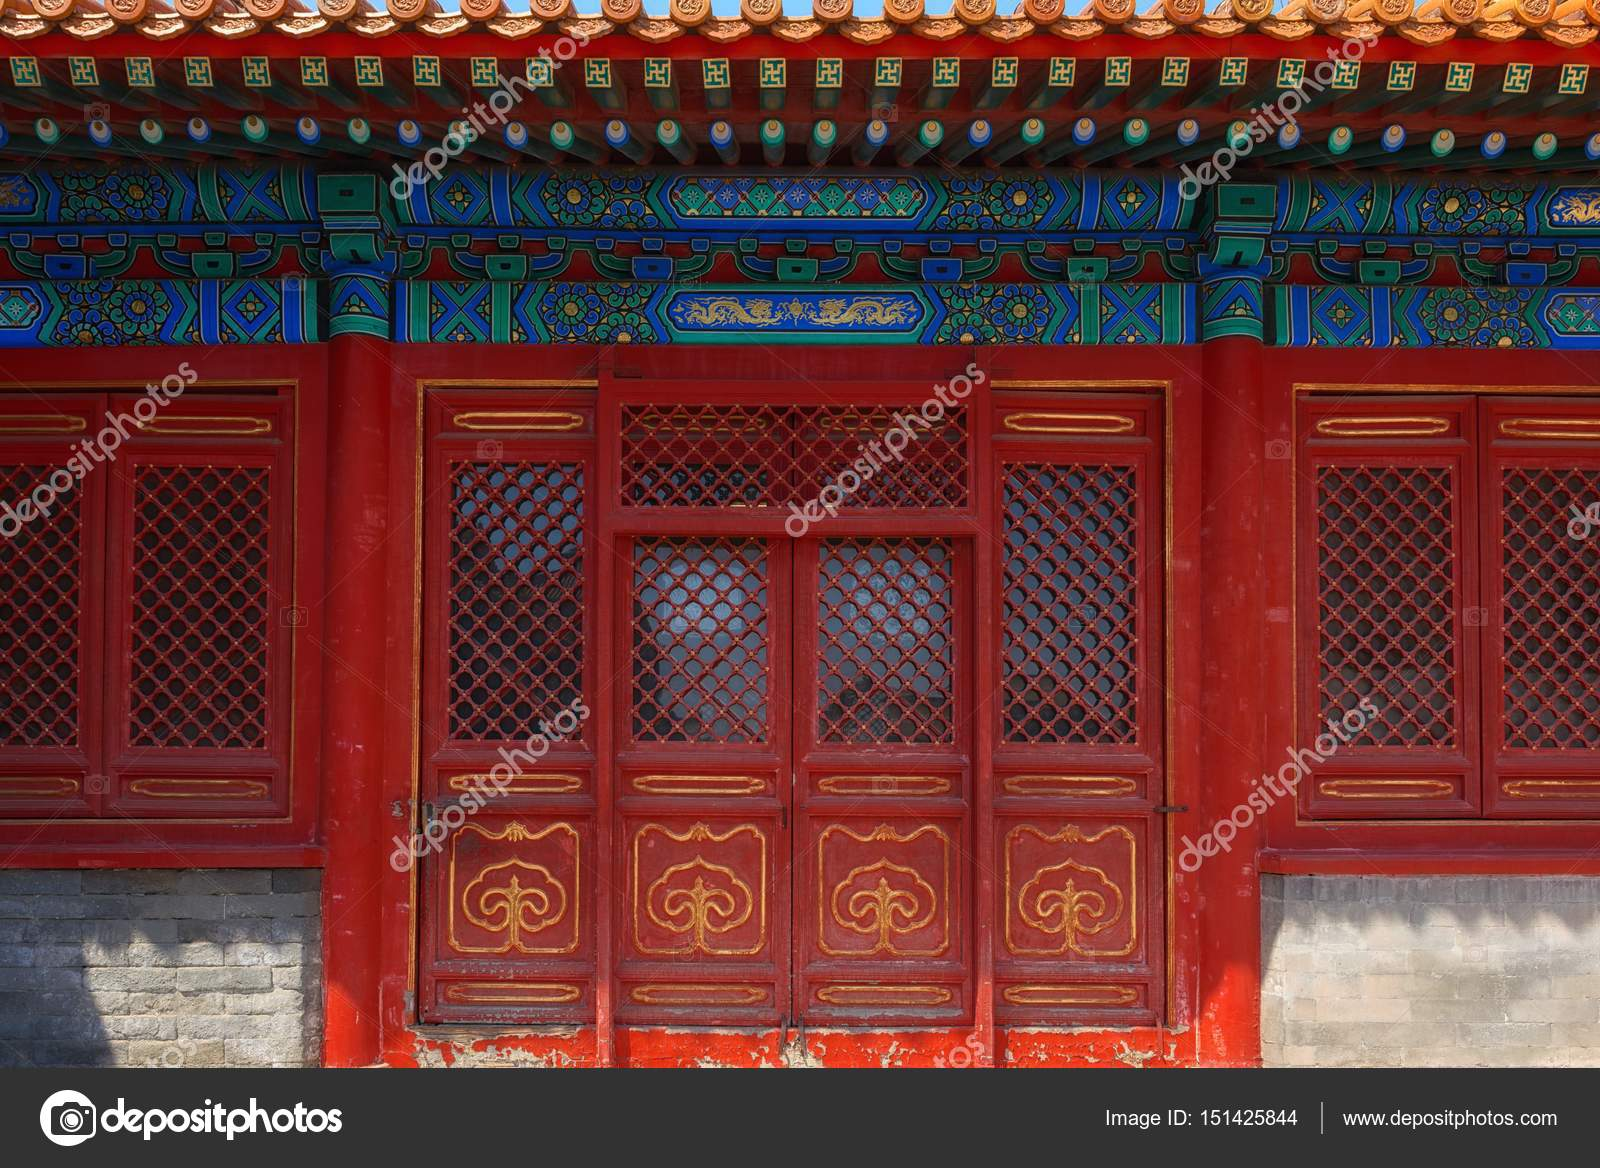 Gateway with red Chinese doors u2014 Stock Photo & Gateway with red Chinese doors u2014 Stock Photo © svedoliver #151425844